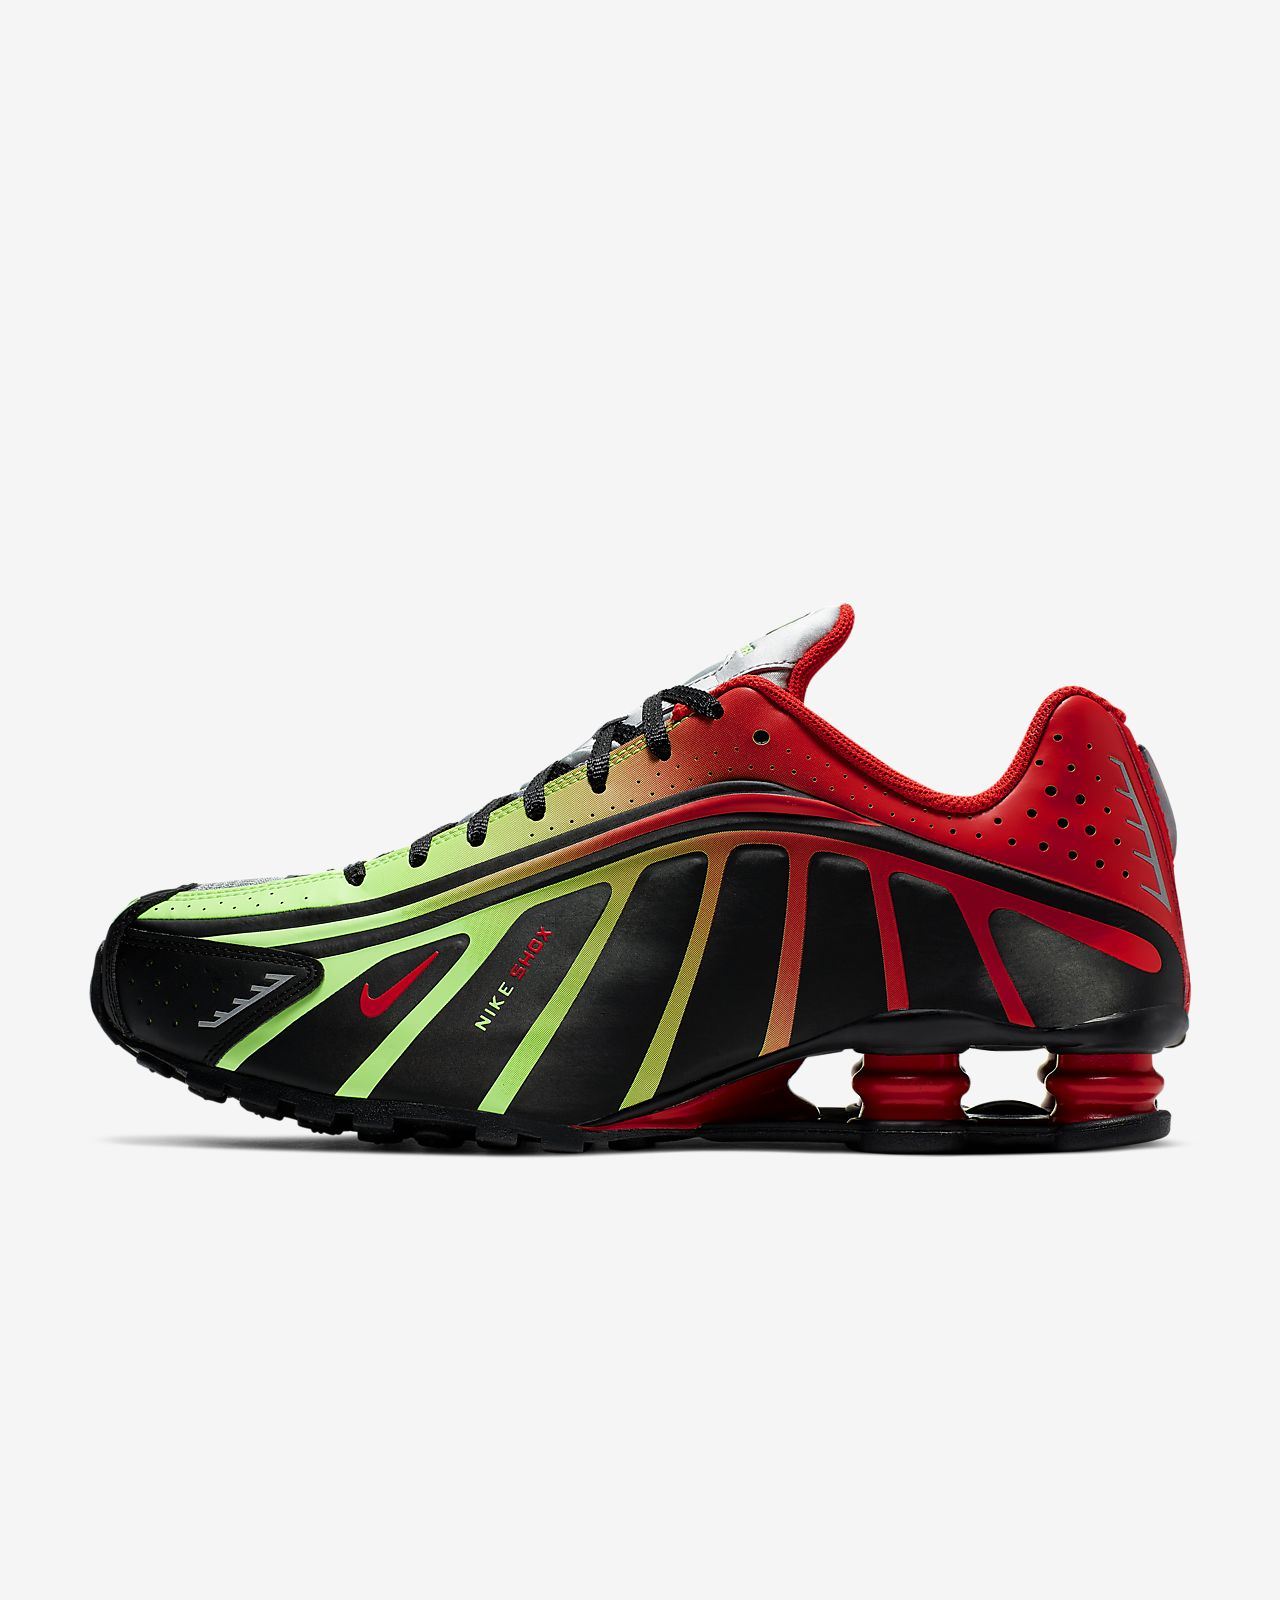 grand choix de c2fe1 cca39 Nike Shox R4 Neymar Jr. Shoe